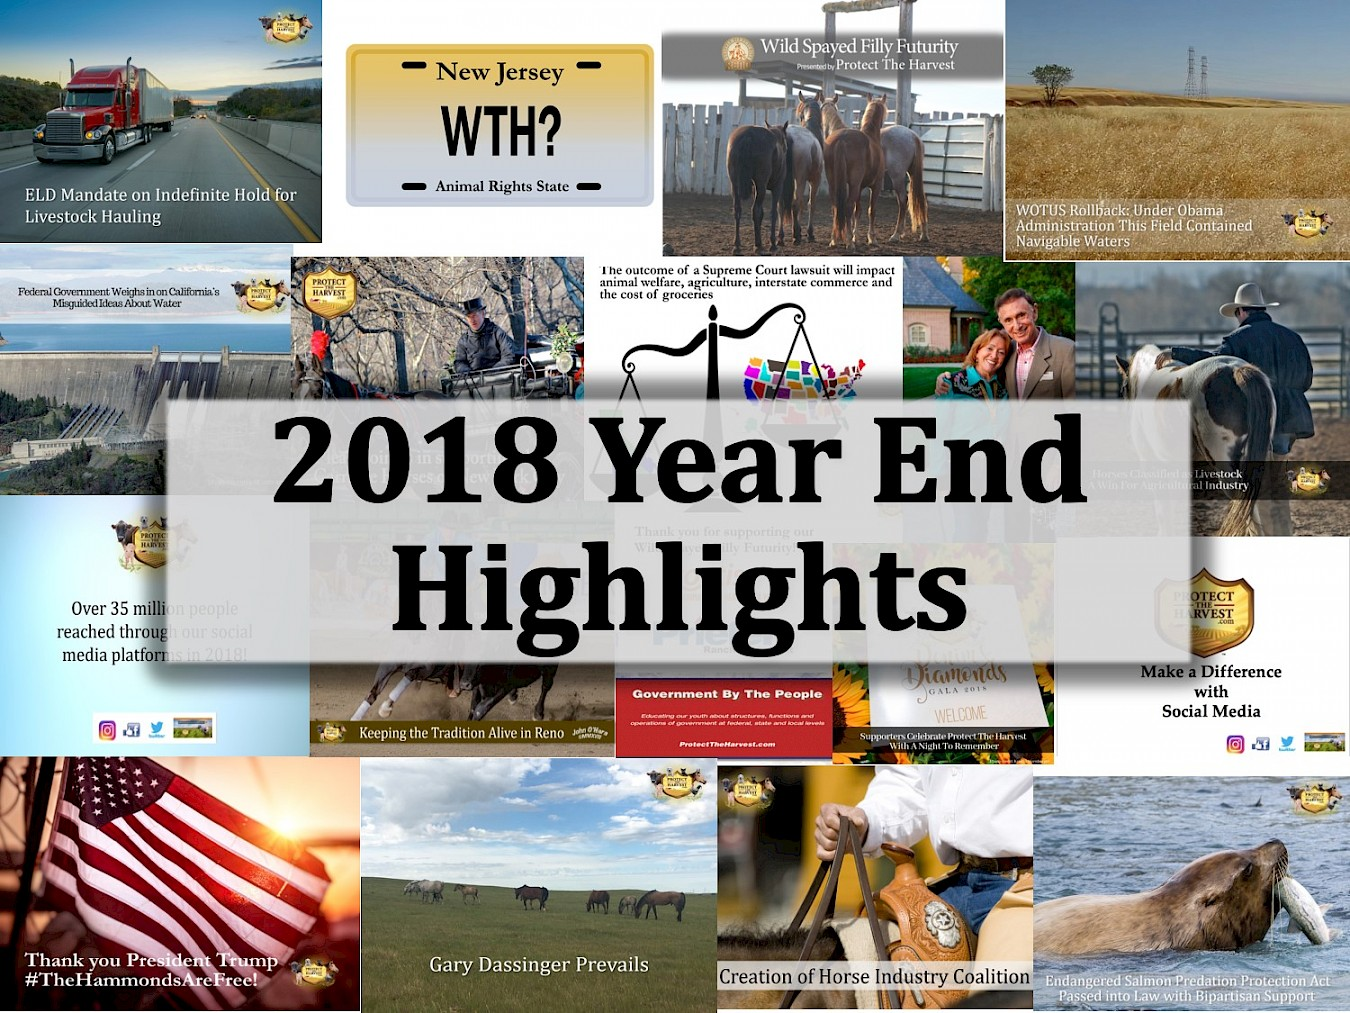 2018 Year End Highlights